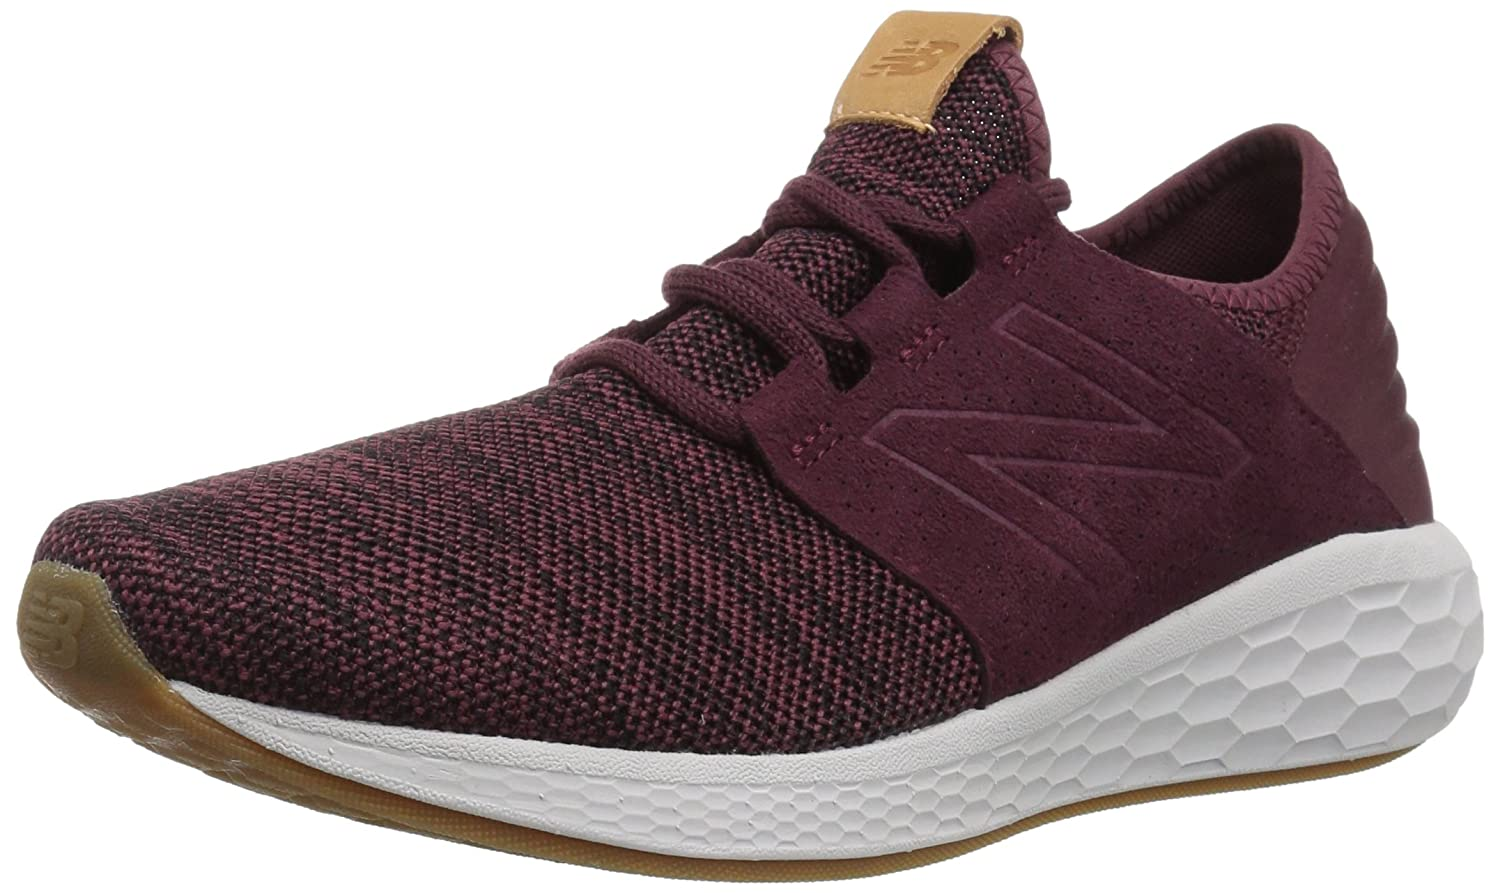 New Balance Fresh Foam Cruz V2 Knit, Zapatillas de Running para Hombre 42.5 EU|Rojo (Nb Burgundy/Black/Nimbus Cloud Km2)